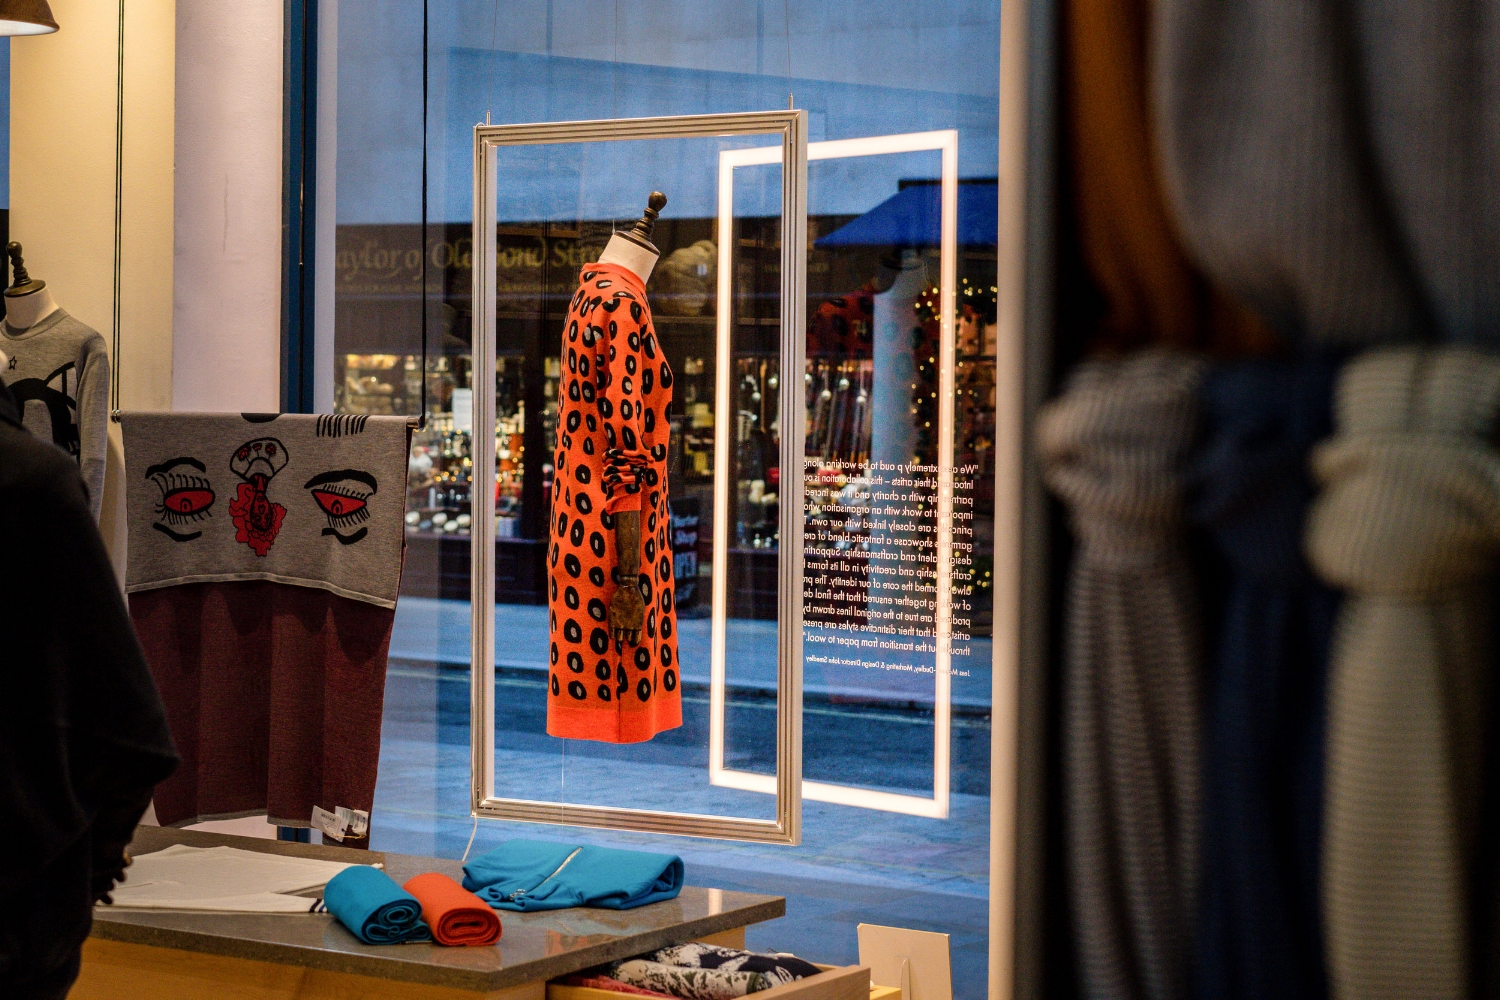 onebigcompany-design-london-art-direction-retail-marketing-window-display-john-smedley-knitwear-jermyn-street-christmas-2018-4.jpg